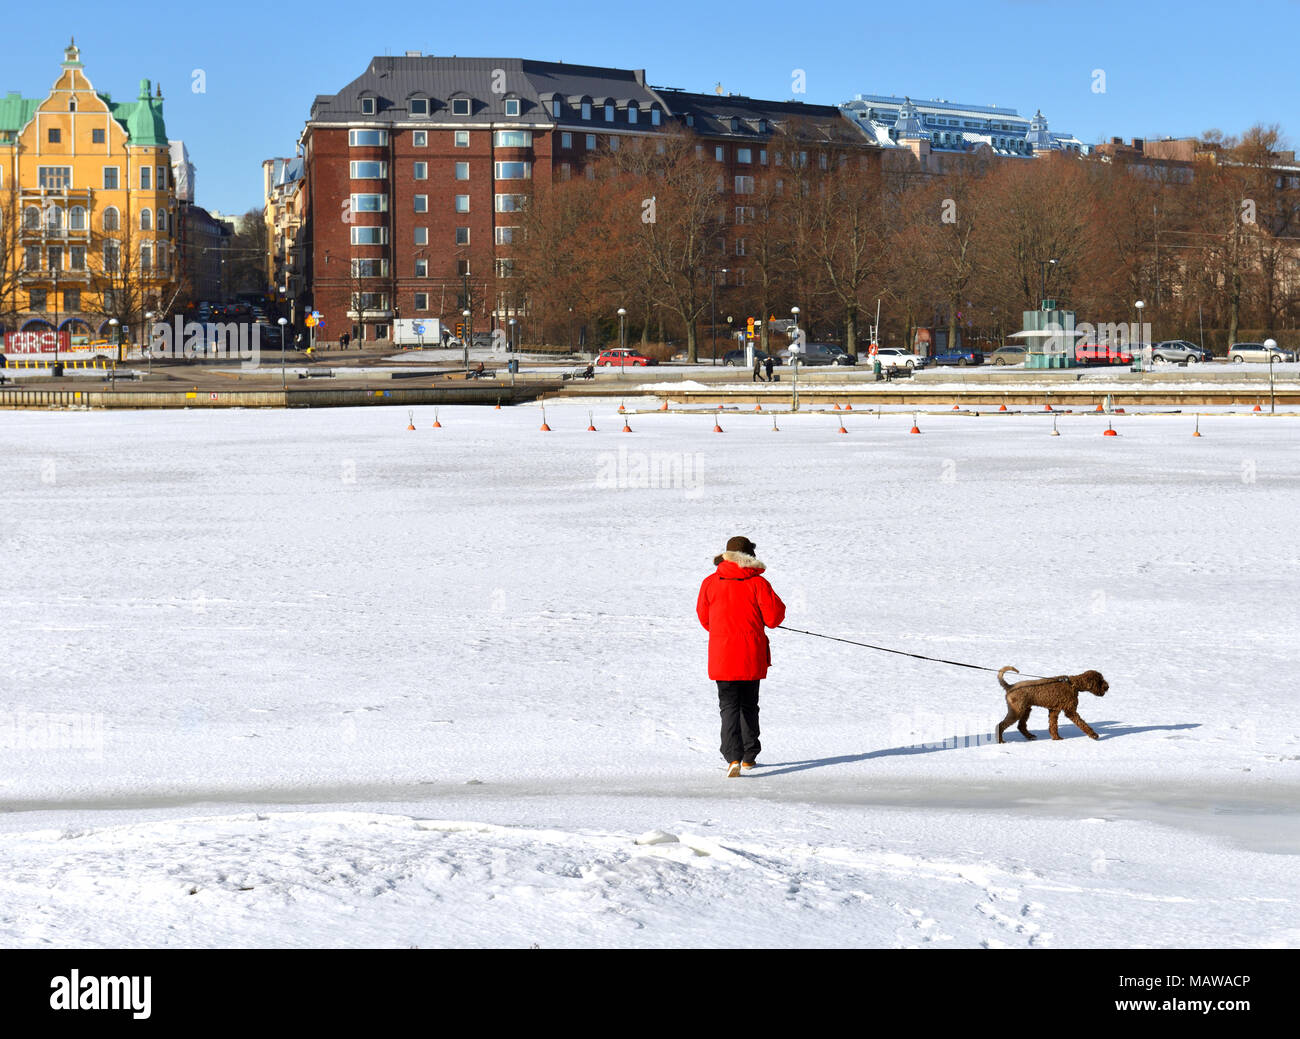 HELSINKI, FINLAND - MARCH 26, 2018: Man in red jacket walks with dog on ice of Gulf of Finland - Stock Image